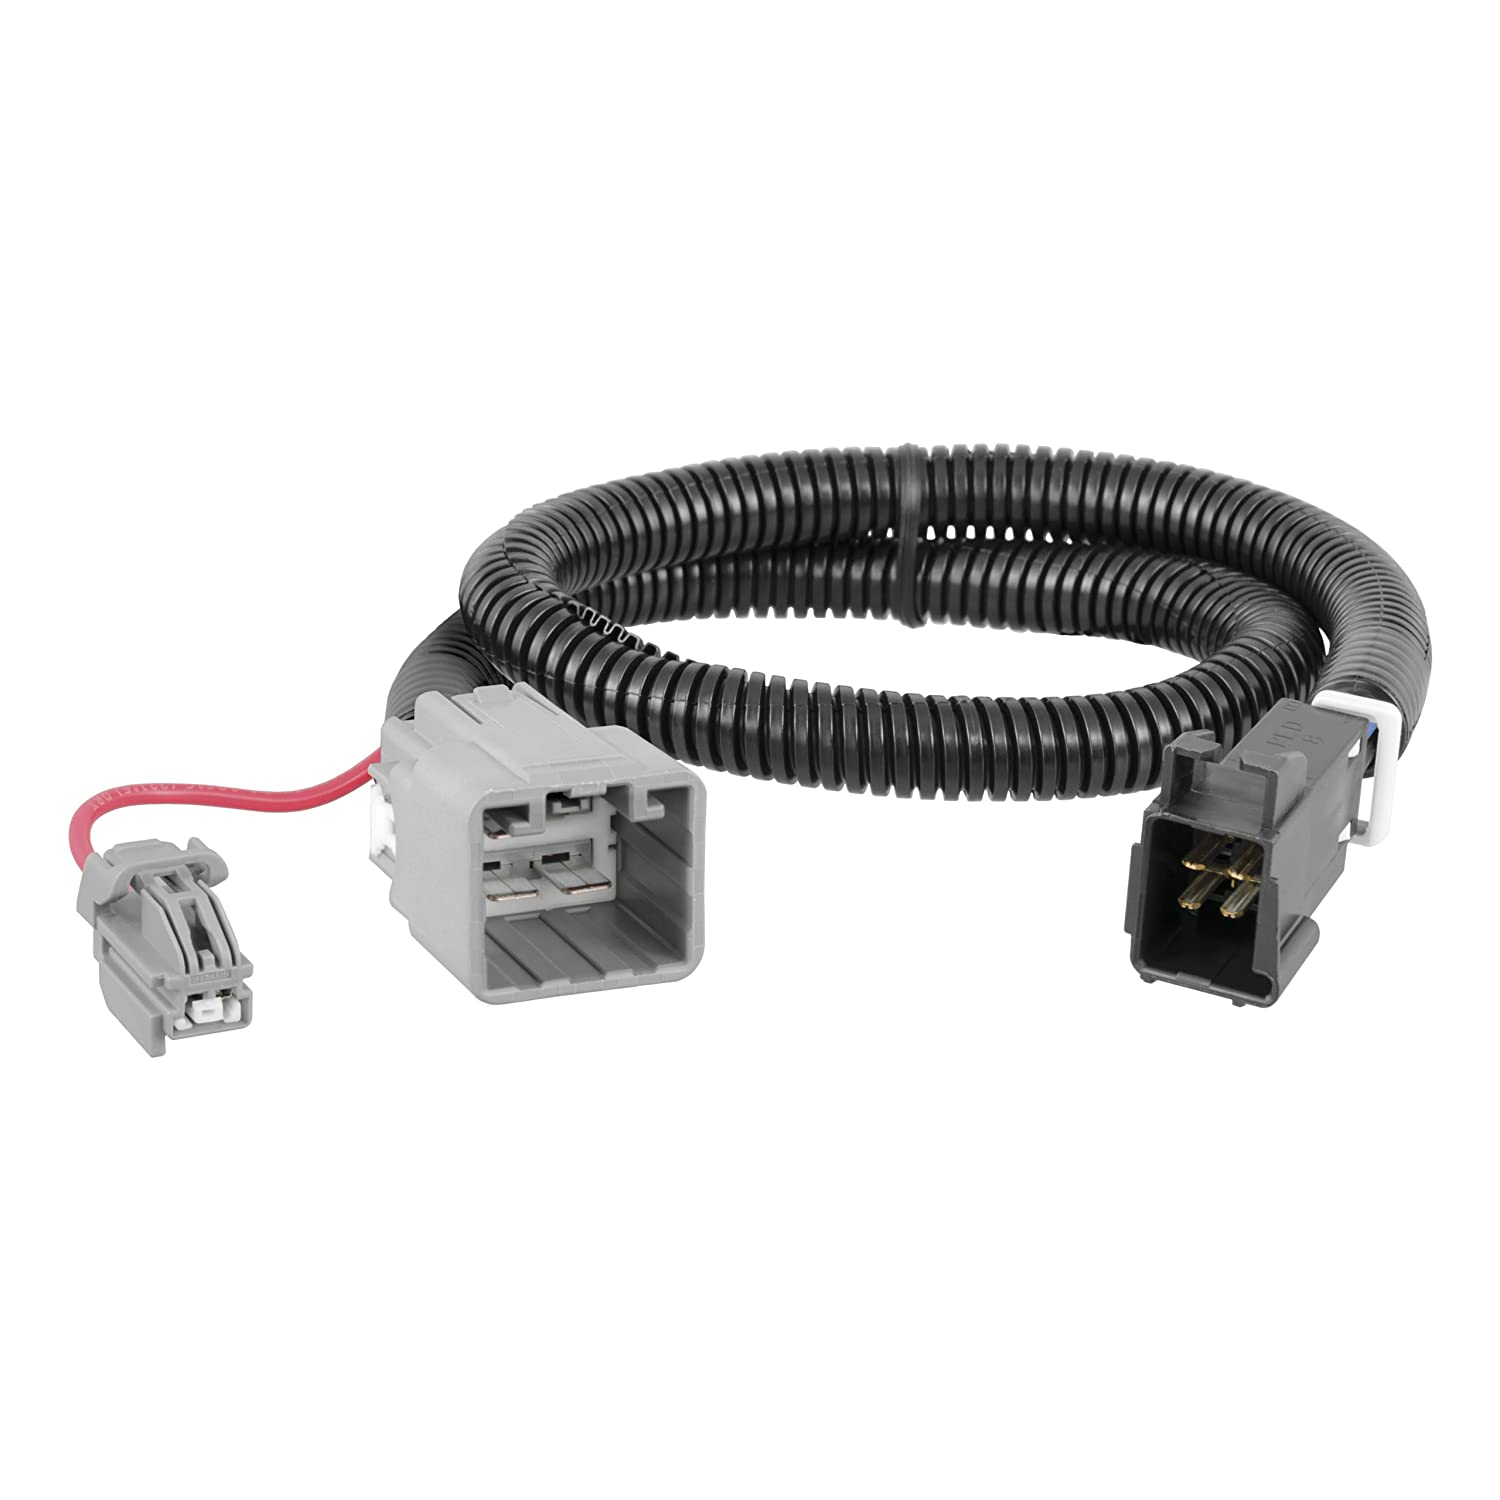 Curt 51453 Brake Control Harness Automotive Trailer Hitch Wiring Electrical Harnesses Adapters Connectors